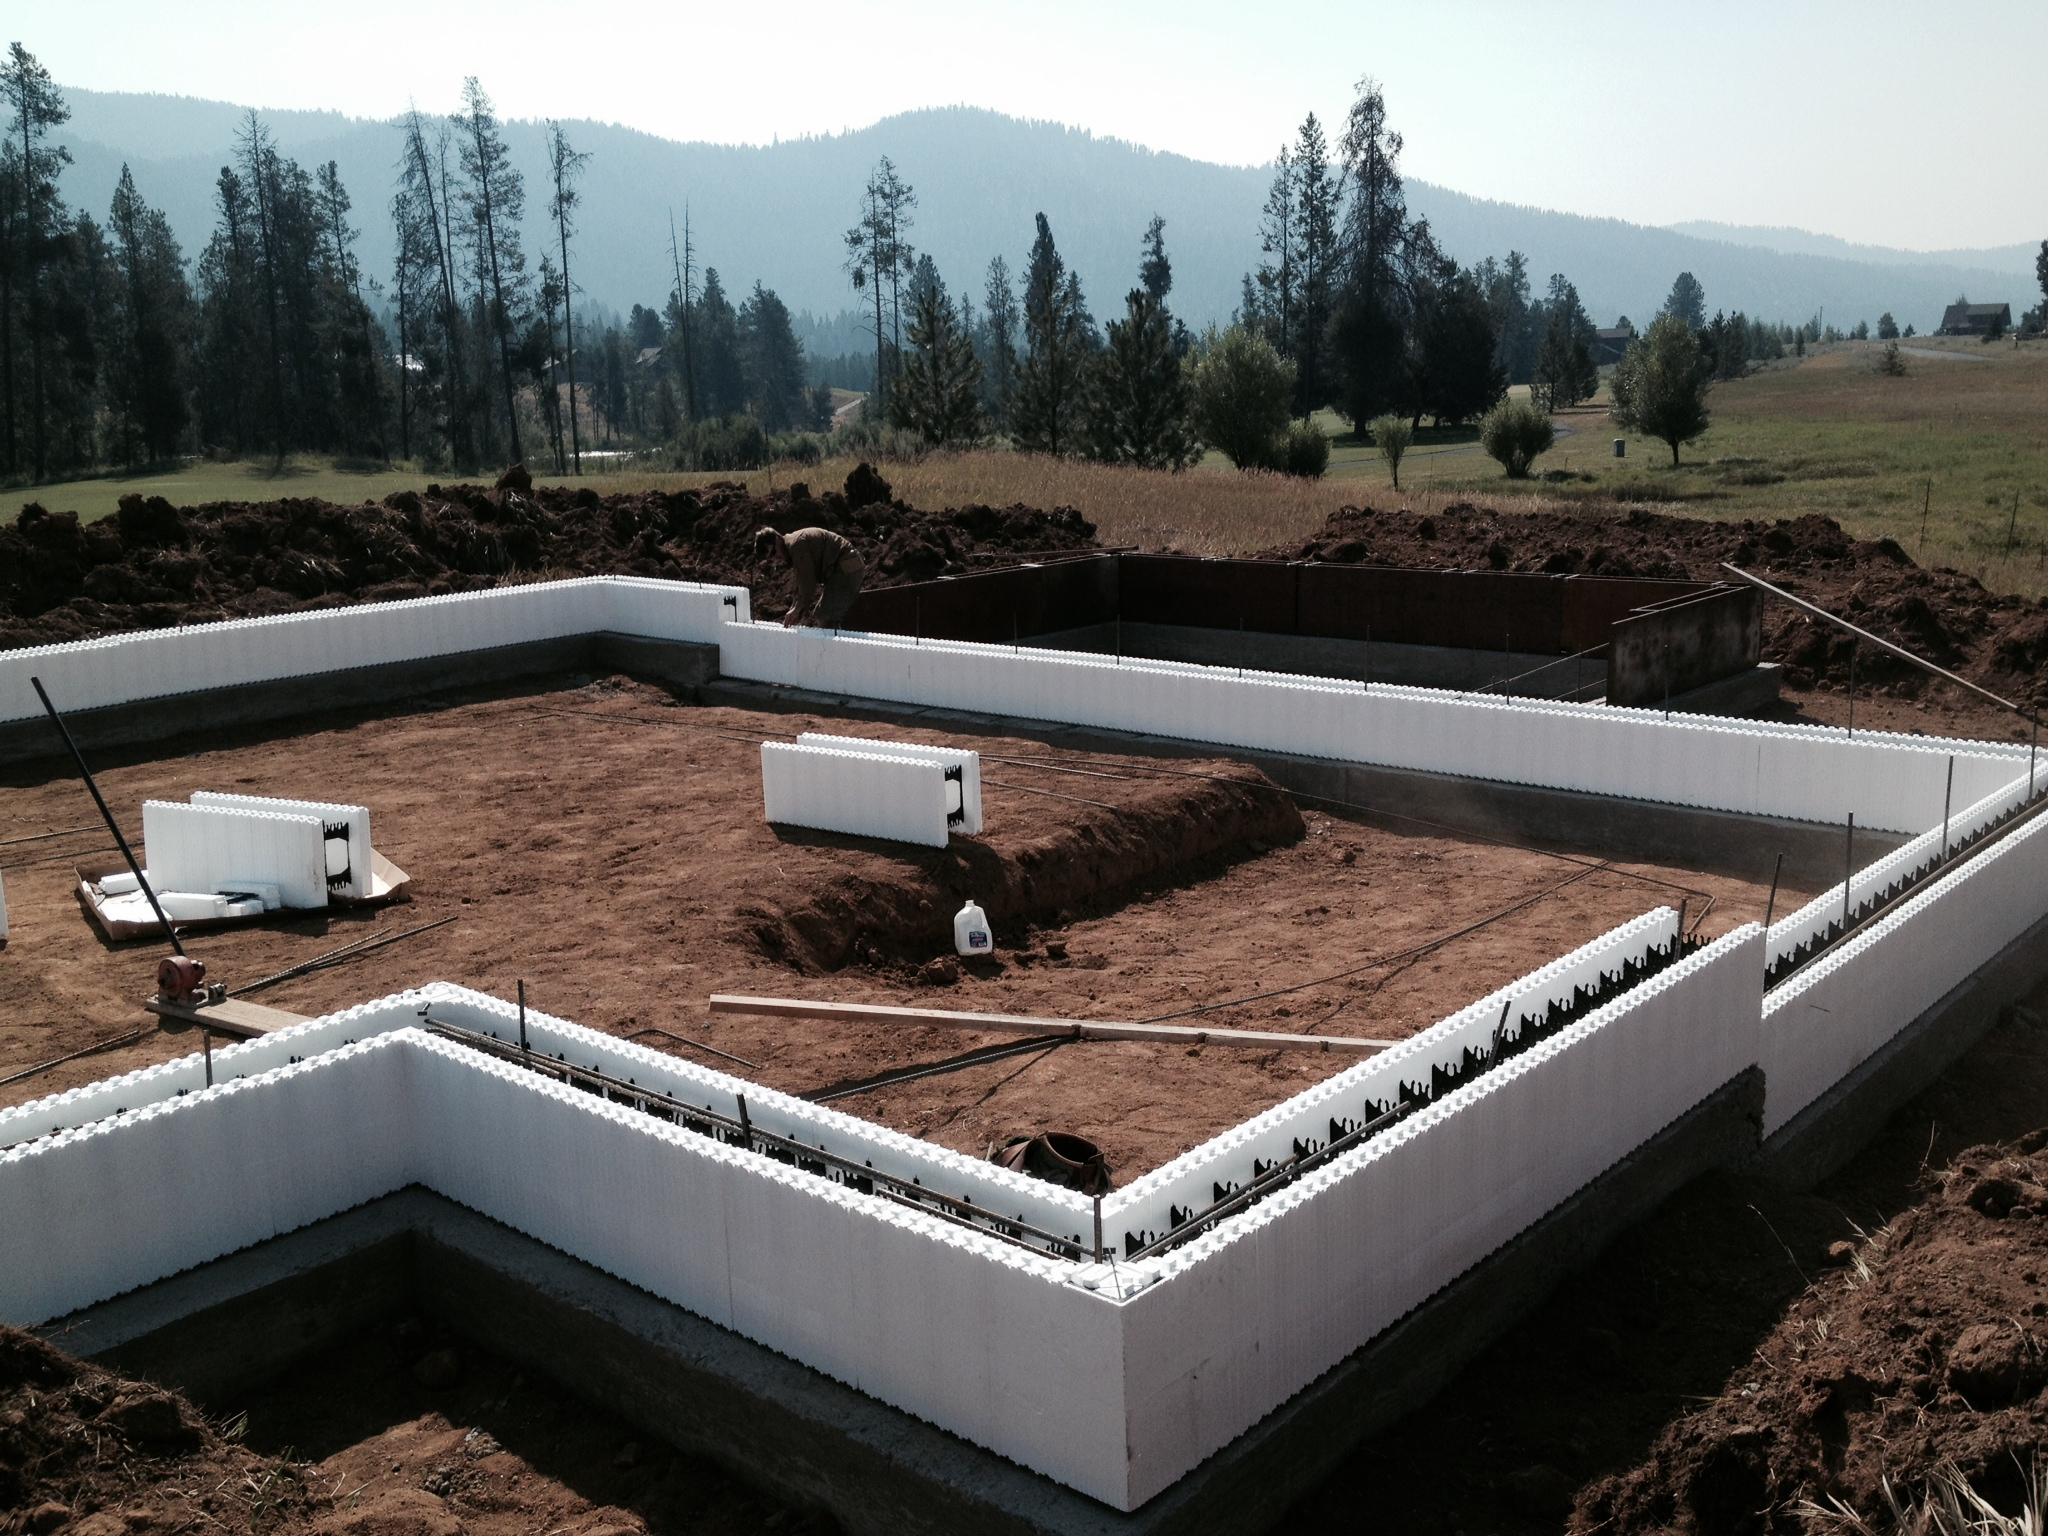 Building a strong foundation jug mountain ranch for Home foundation